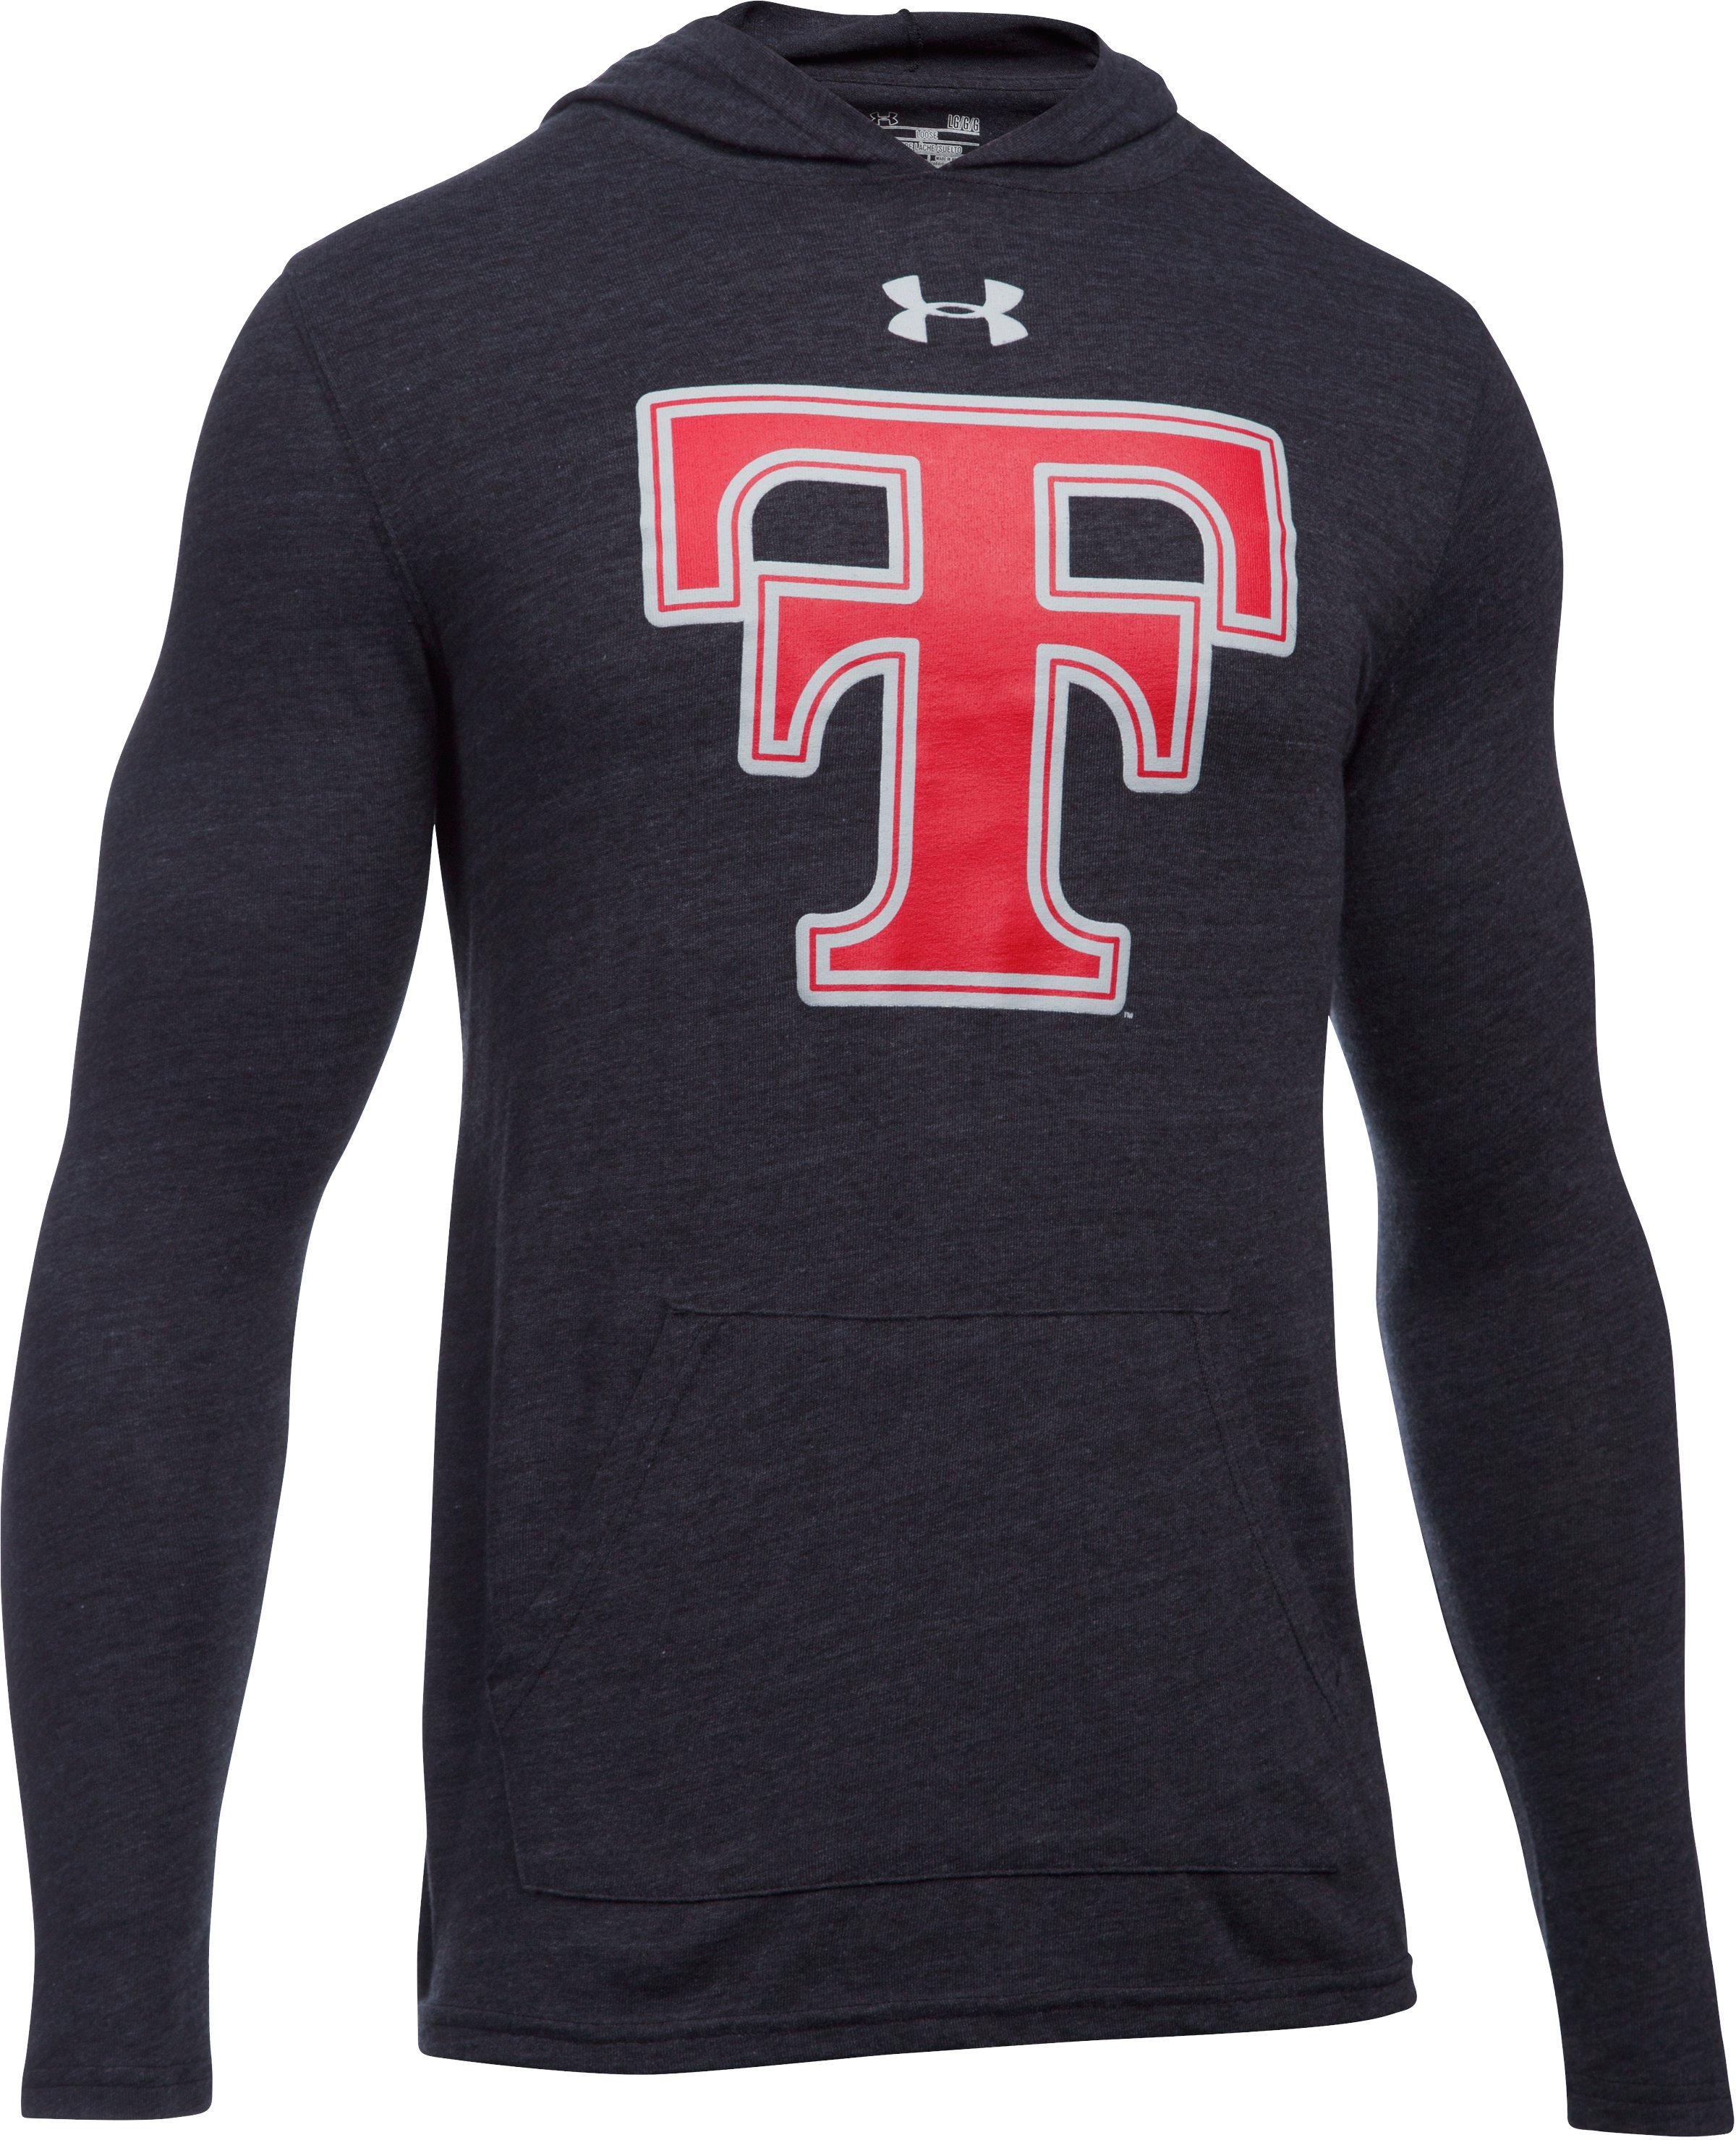 Men's Texas Tech UA Tri-Blend Hoodie, Black